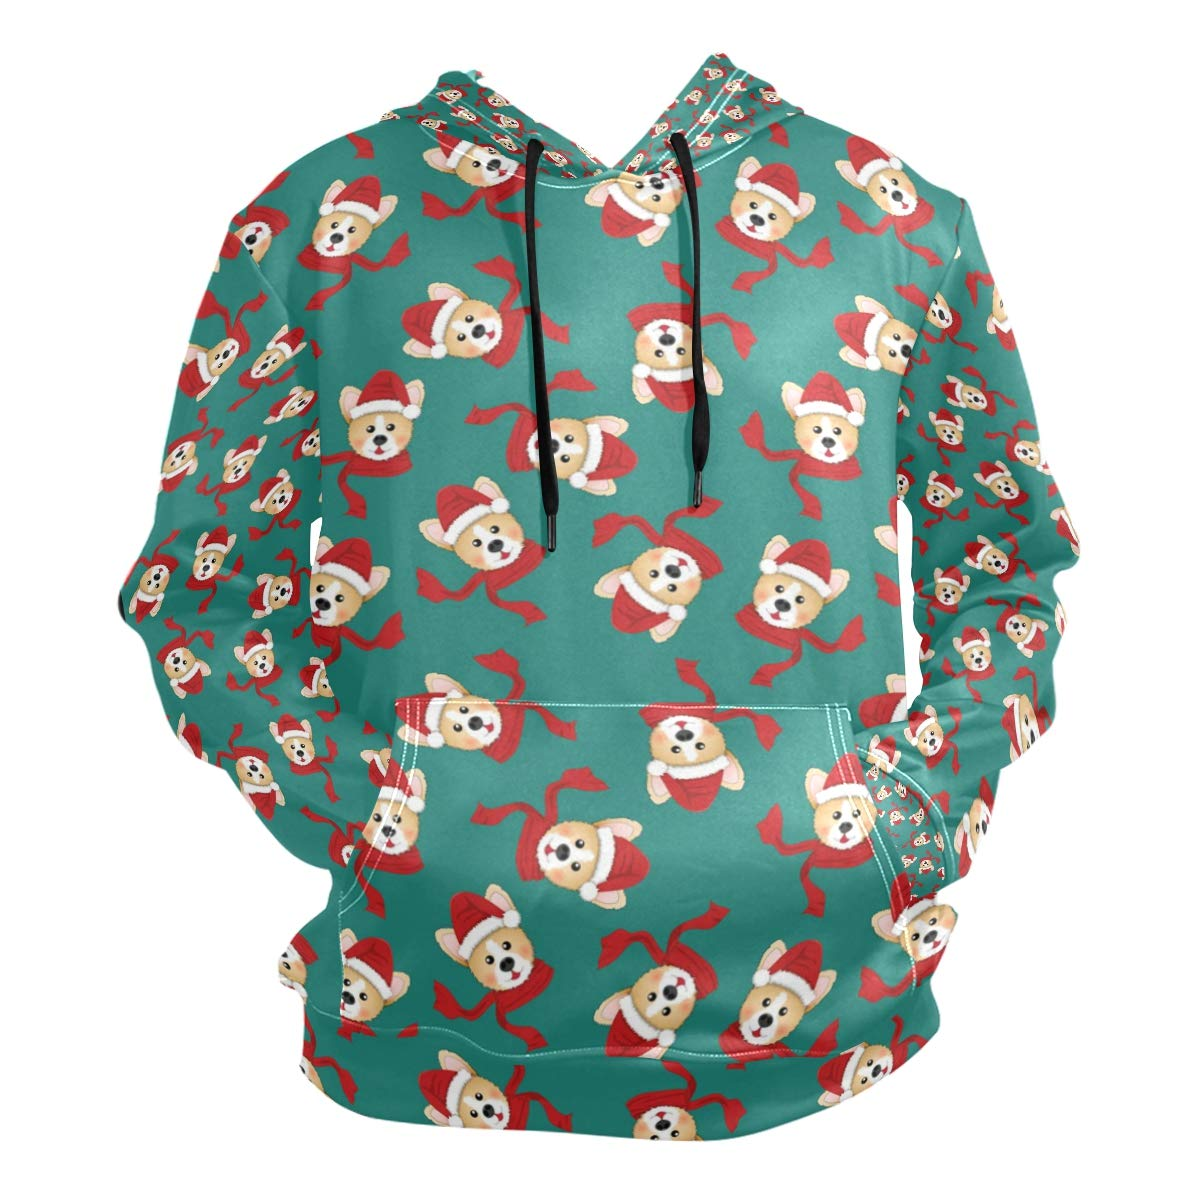 Mens Hooded Sweatshirt Corgi Santa-Claus with Red Scarf Green Pullover Fashion Hoodie Sweater